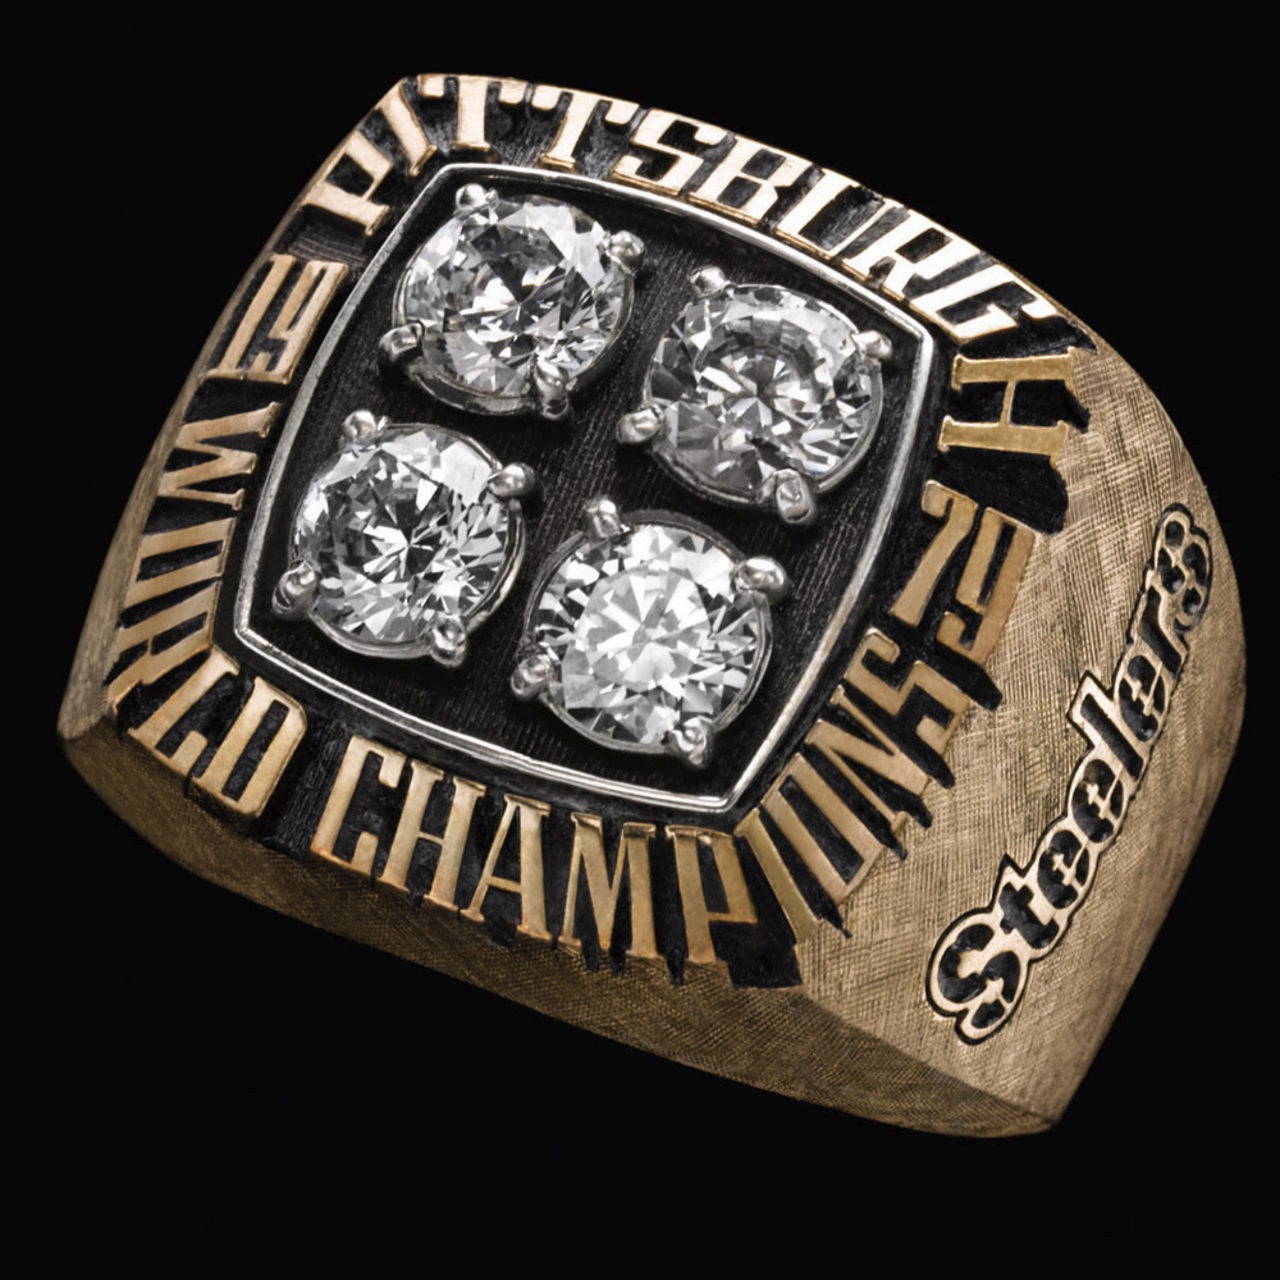 Pittsburgh Steelers 1980 champions ring